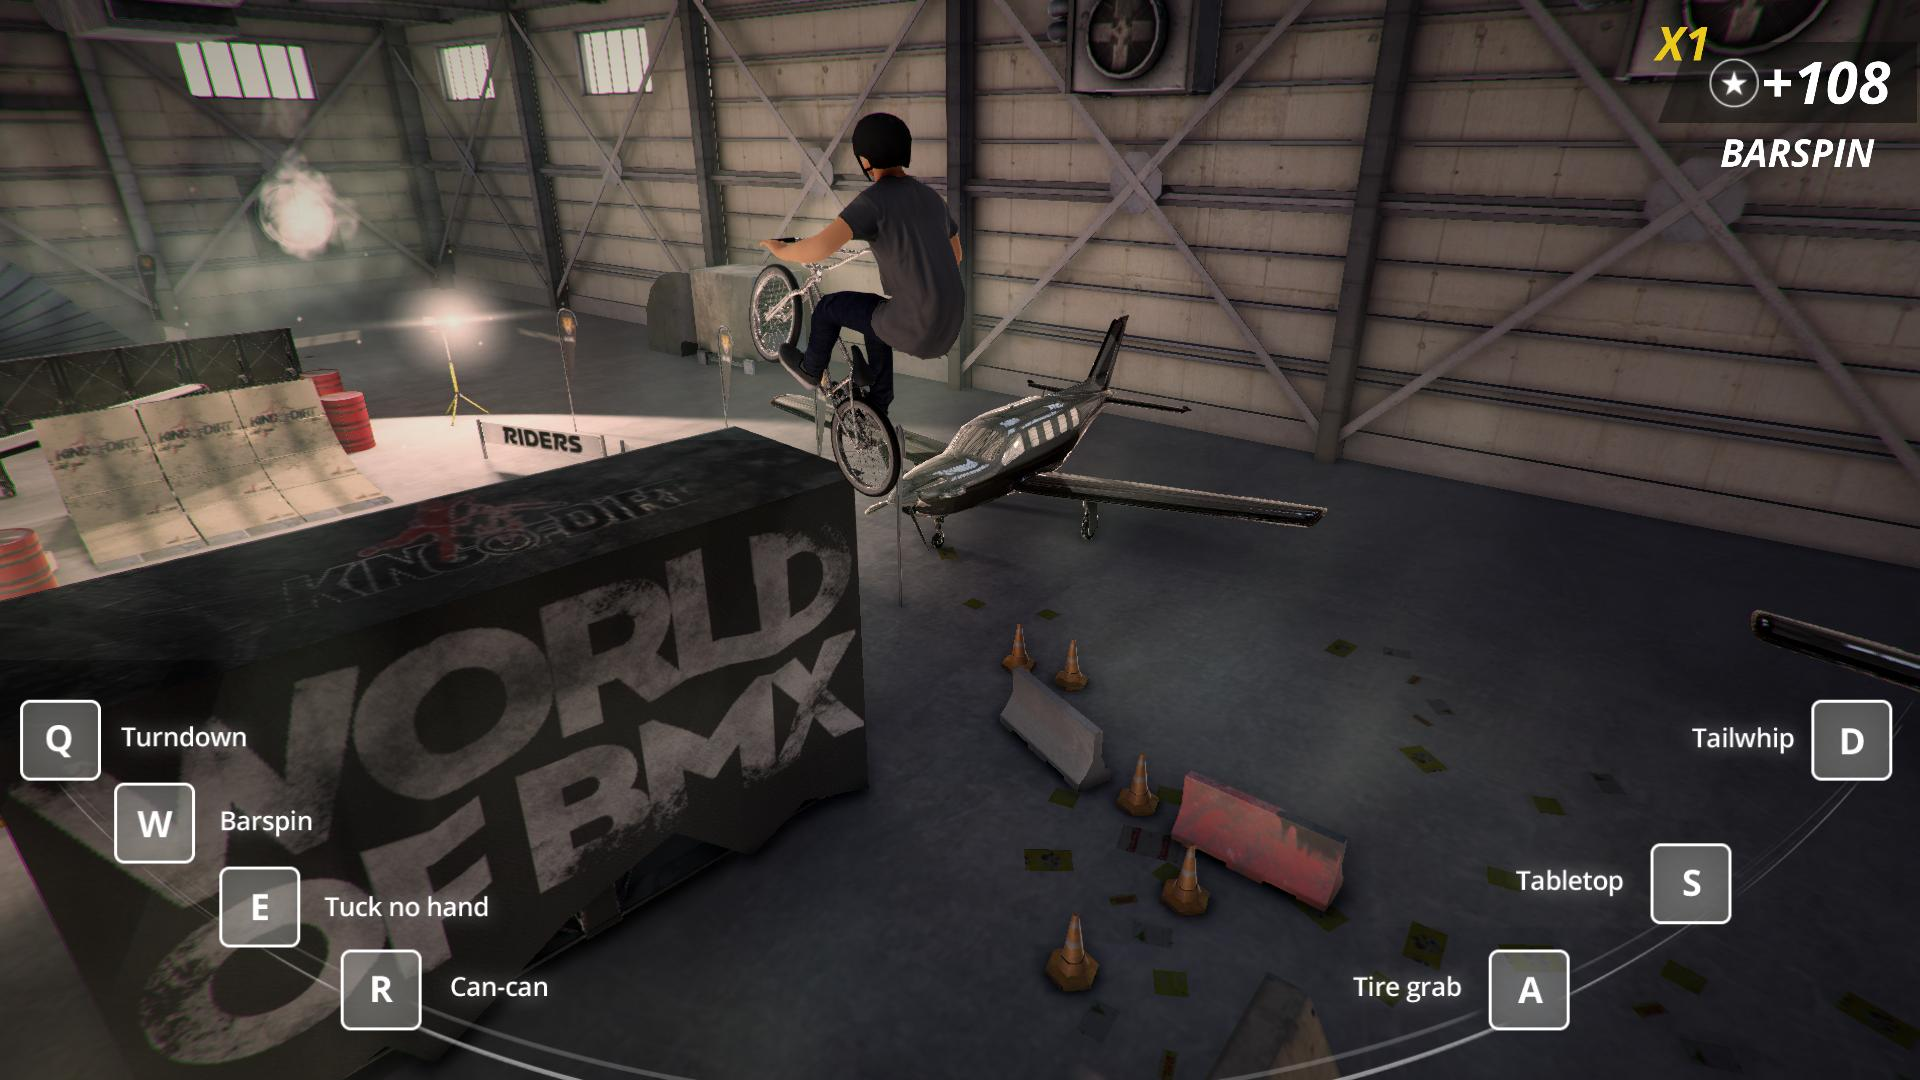 Fully pc games links: mat hoffman's pro bmx game.